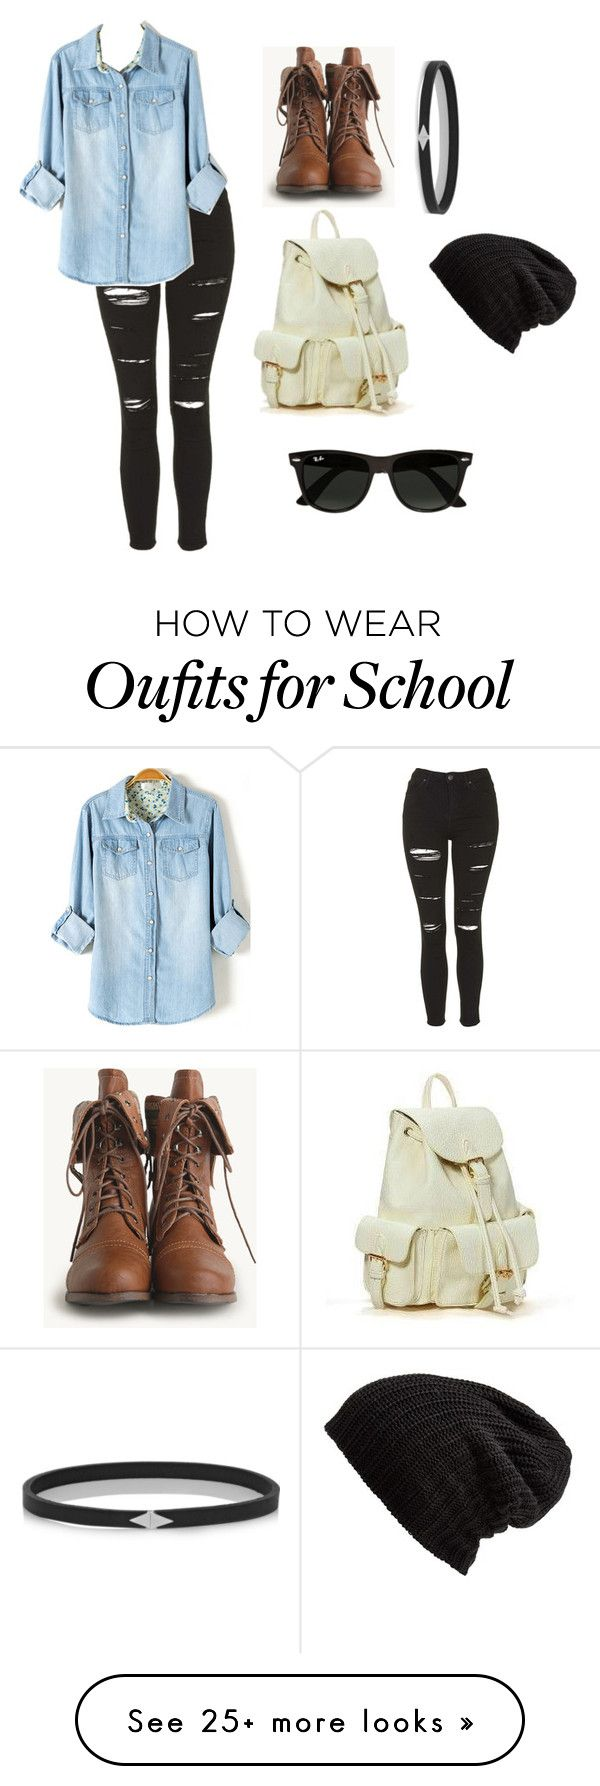 """school"" by ilovescreamqueens13 on Polyvore featuring Topshop, Ray-Ban, Wendy Nichol and Free People"